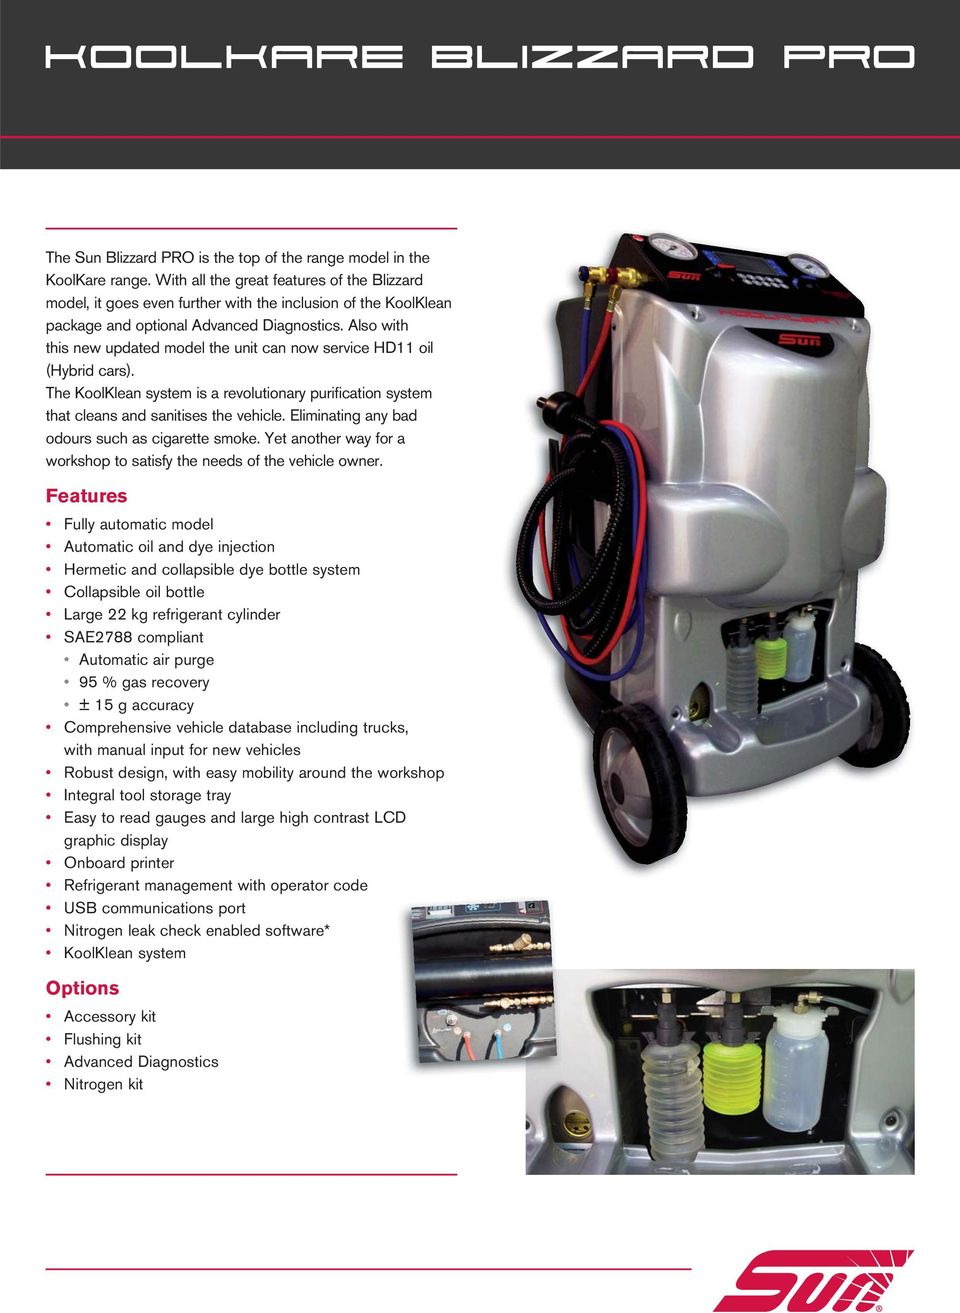 Also with this new updated model the unit can now service HD11 oil (Hybrid cars). The KoolKlean system is a revolutionary purification system that cleans and sanitises the vehicle.